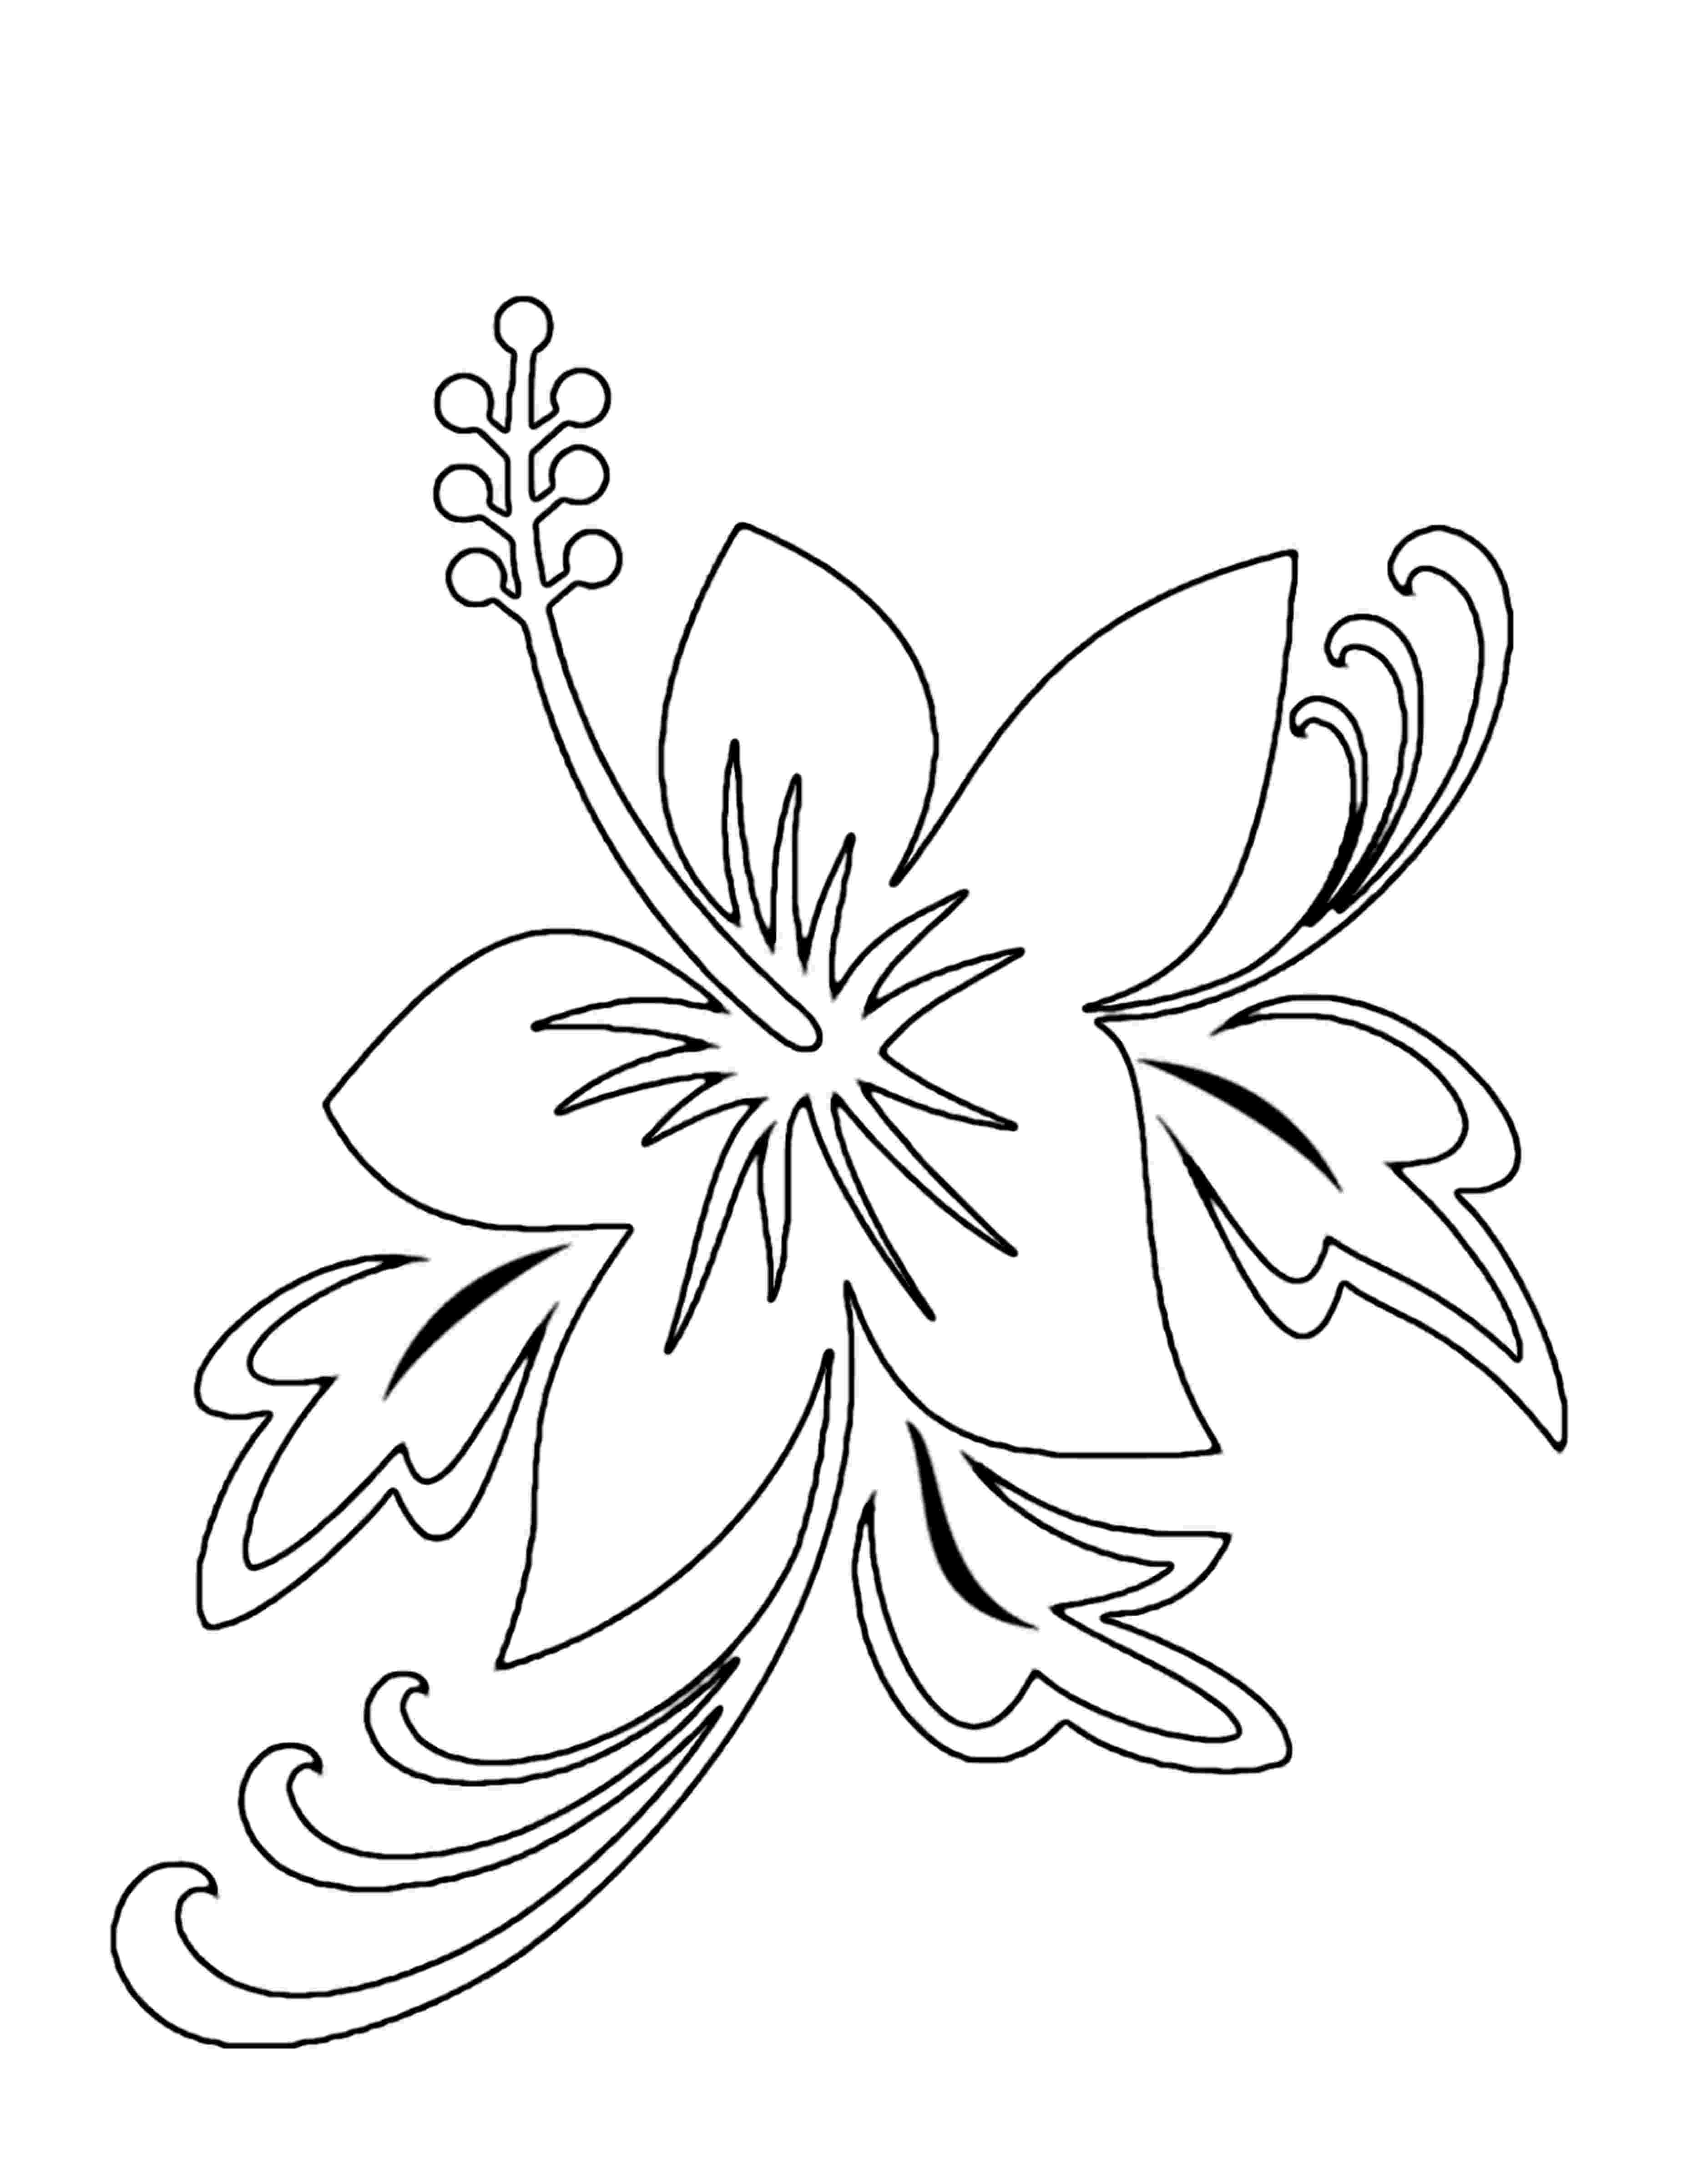 flowers to print and colour free printable flower coloring pages for kids best colour print to and flowers